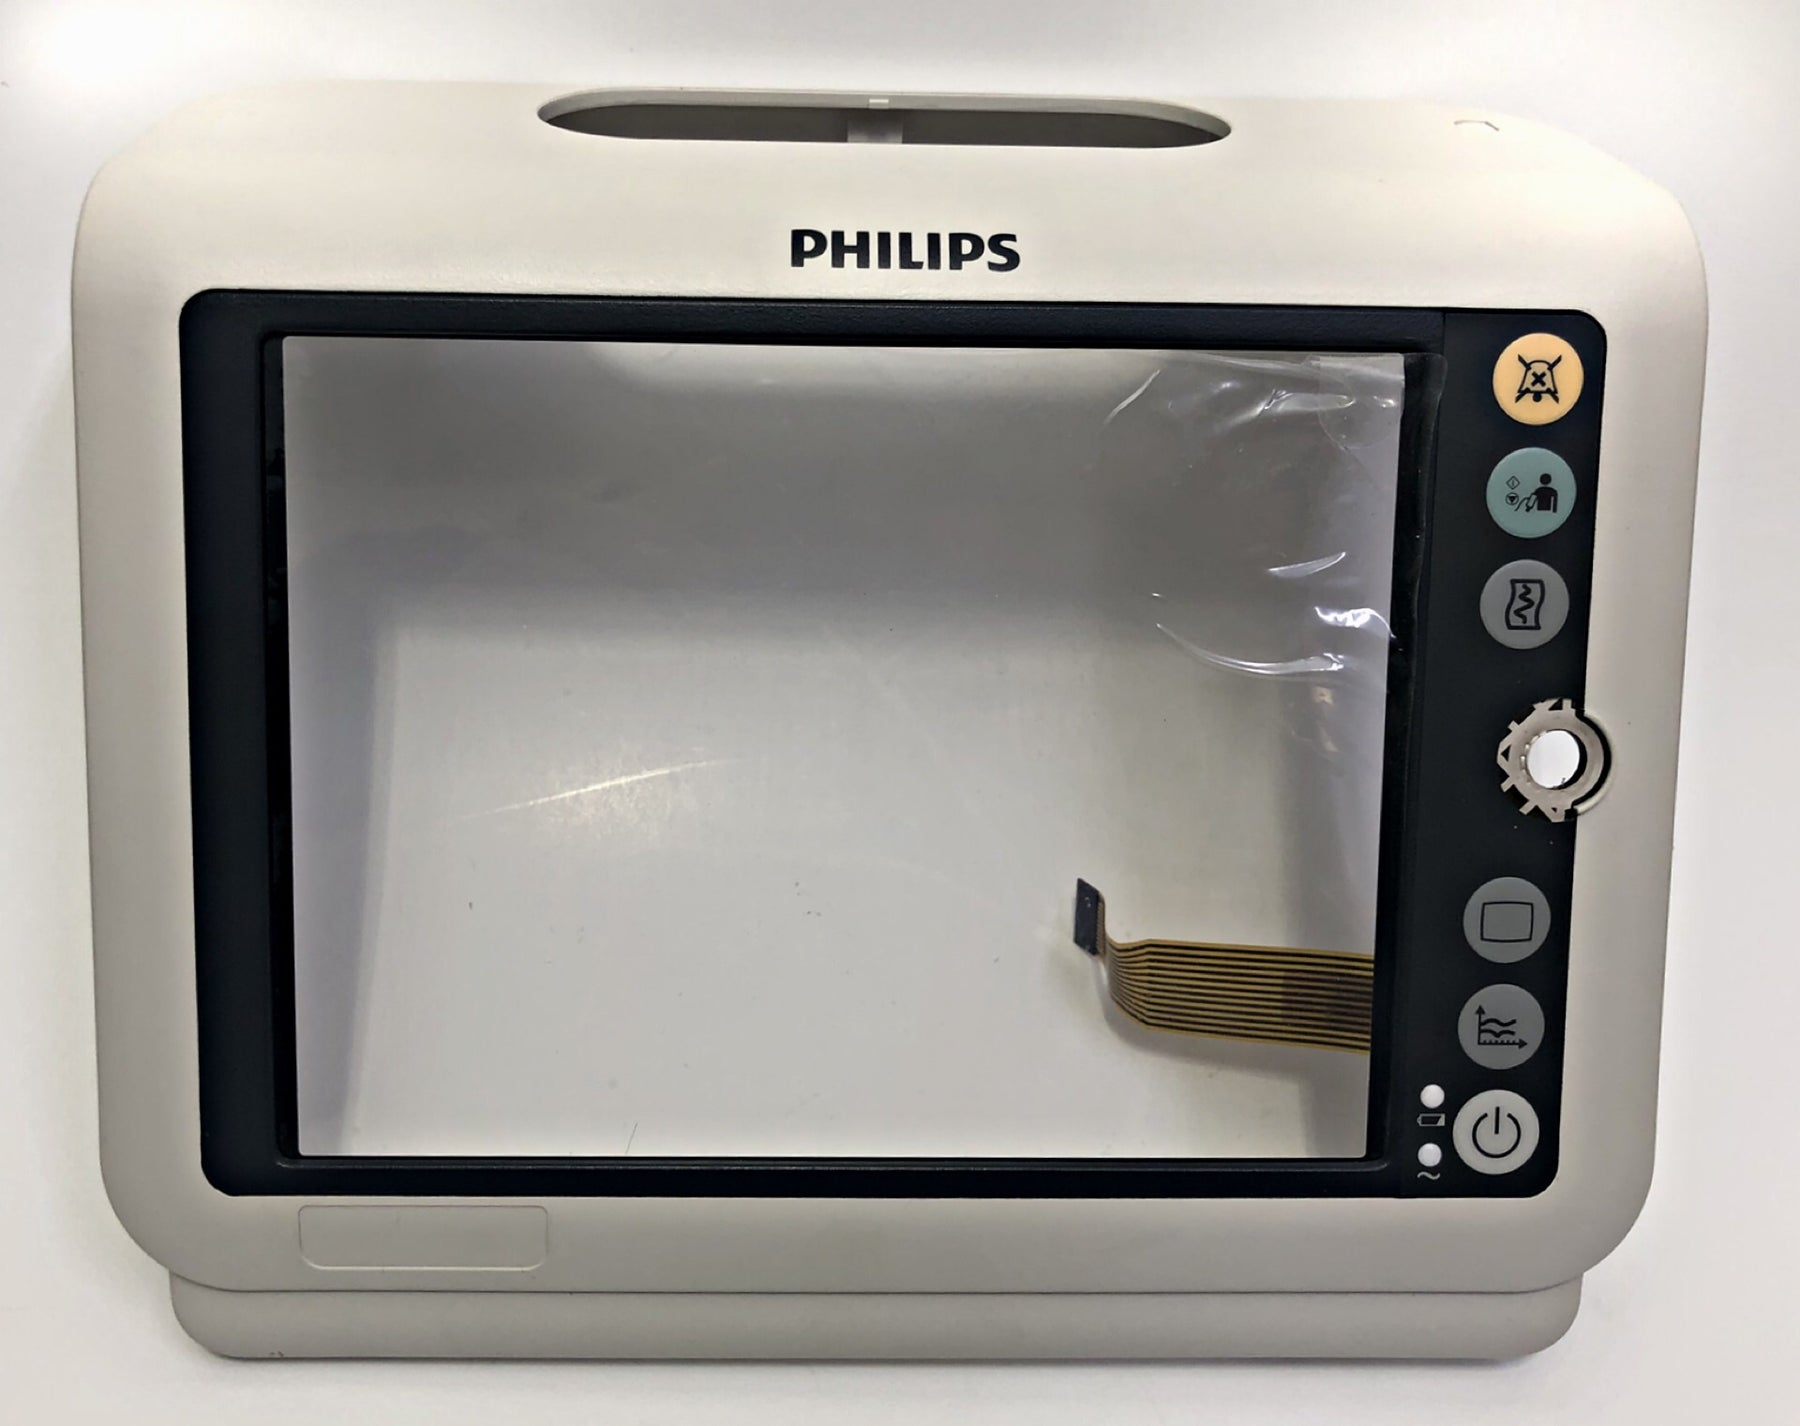 Philips SureSigns VM4 / VM6 Vital Signs Monitor Front Screen Bezel & Keypad Button Assy. - Even Biomedical